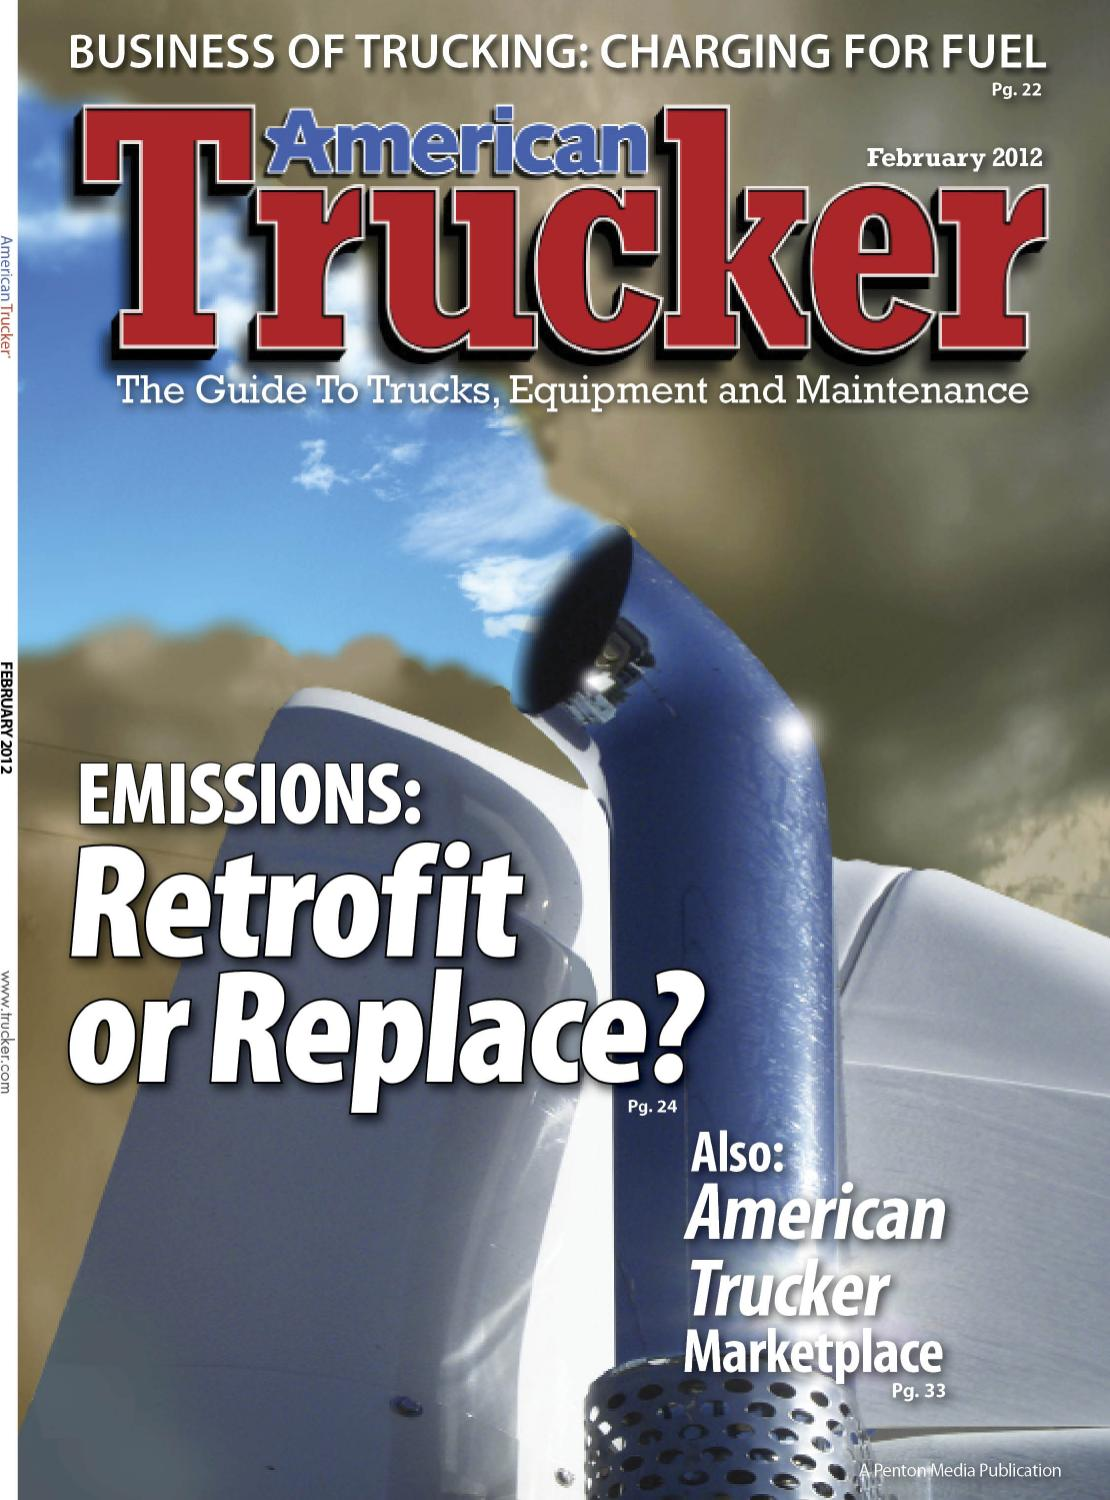 american trucker magazine - photo #38